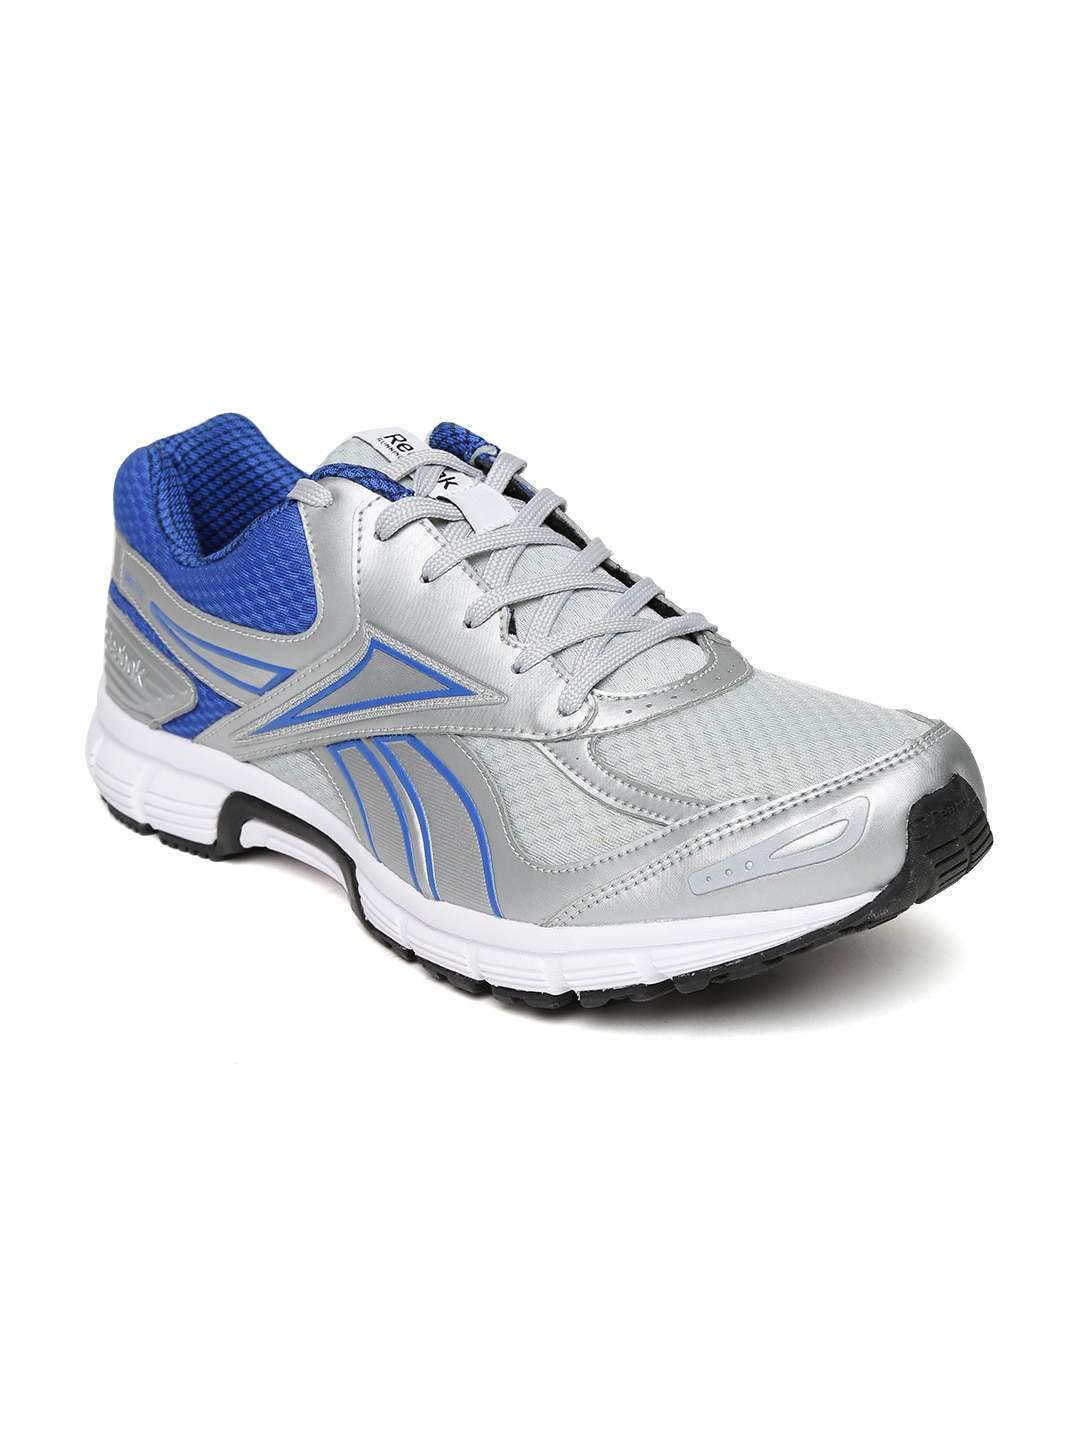 reebok shoes india price list Sale,up